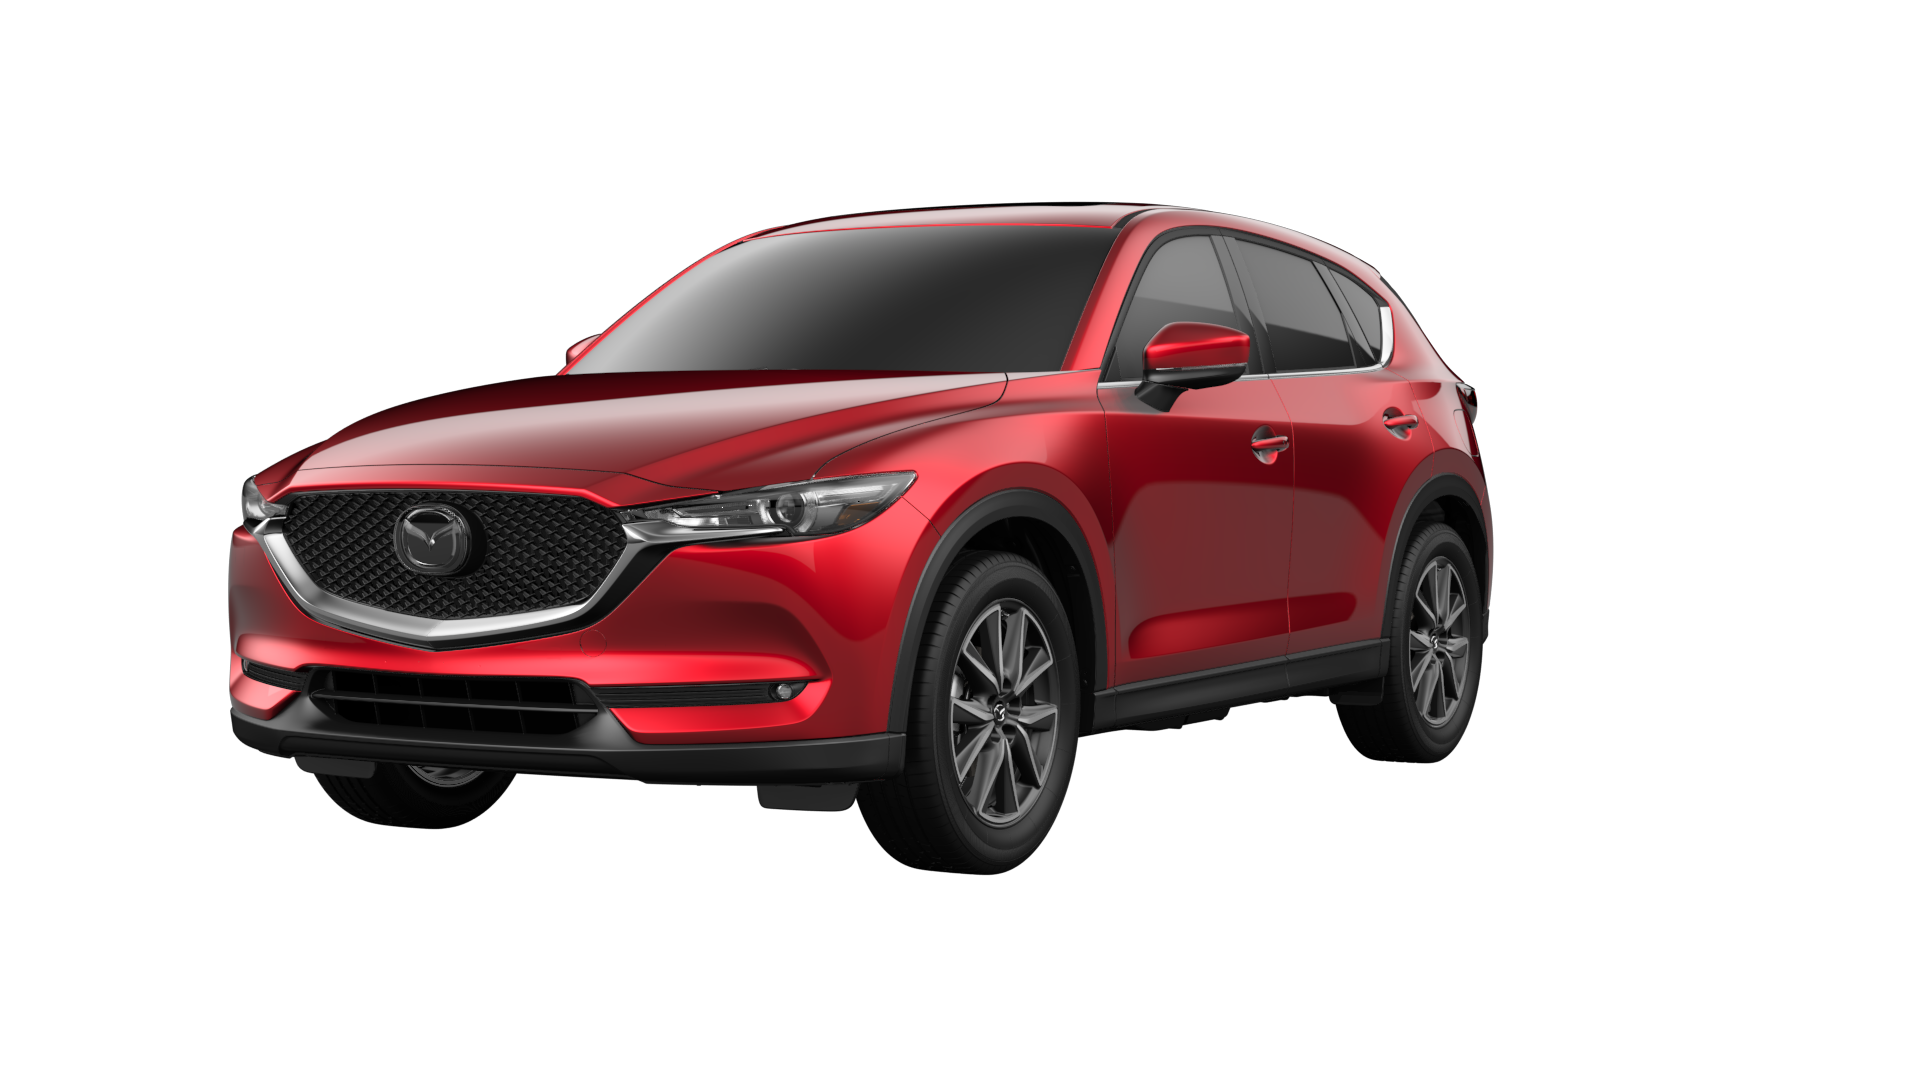 mazda cx 5 vs honda cr v oxmoor mazda in louisville ky. Black Bedroom Furniture Sets. Home Design Ideas